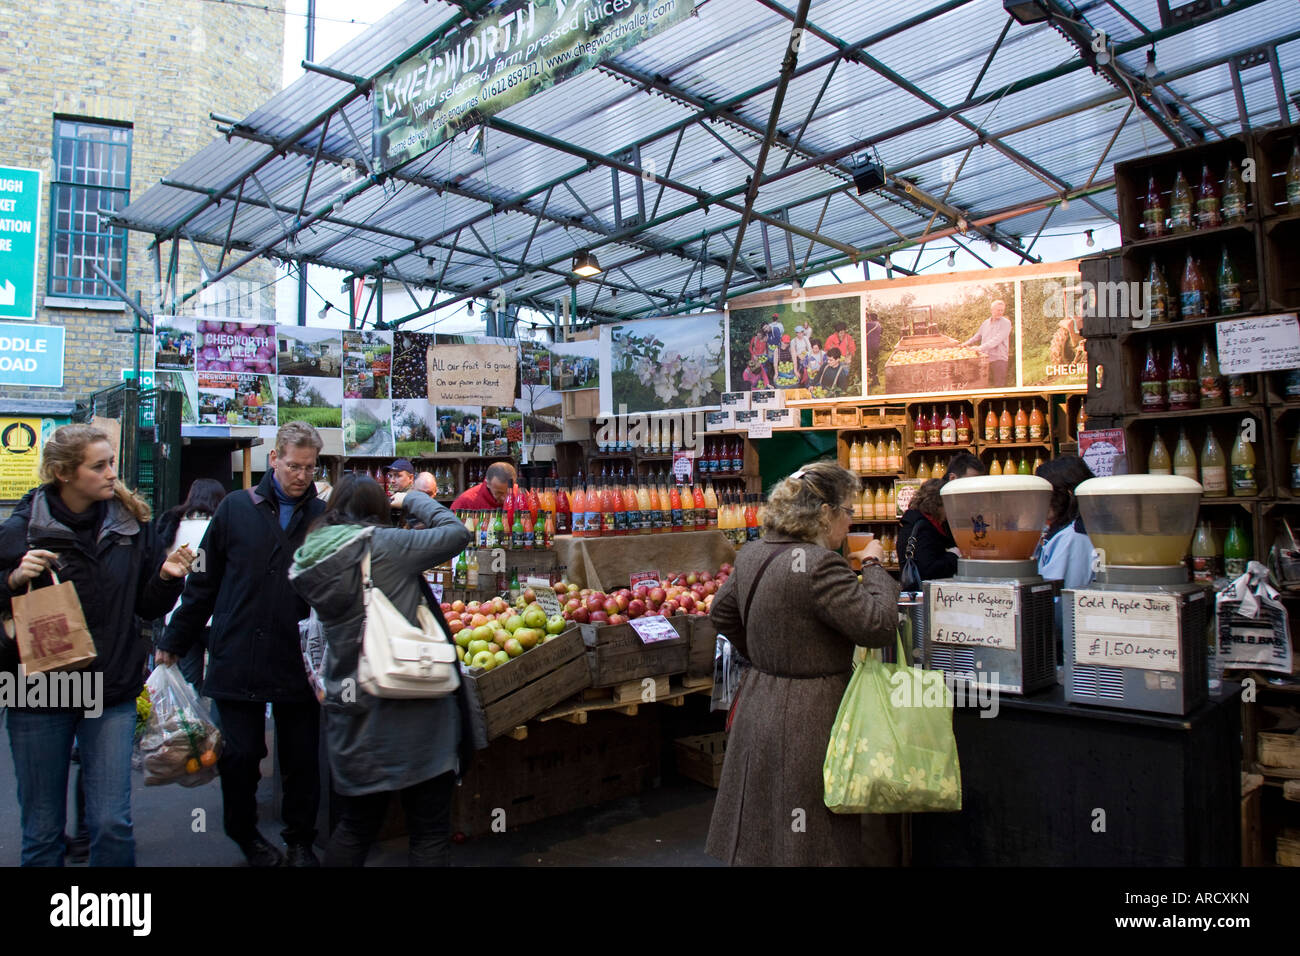 Customers at Stall selling fruit and juices at Borough Market Southwark London GB UK - Stock Image